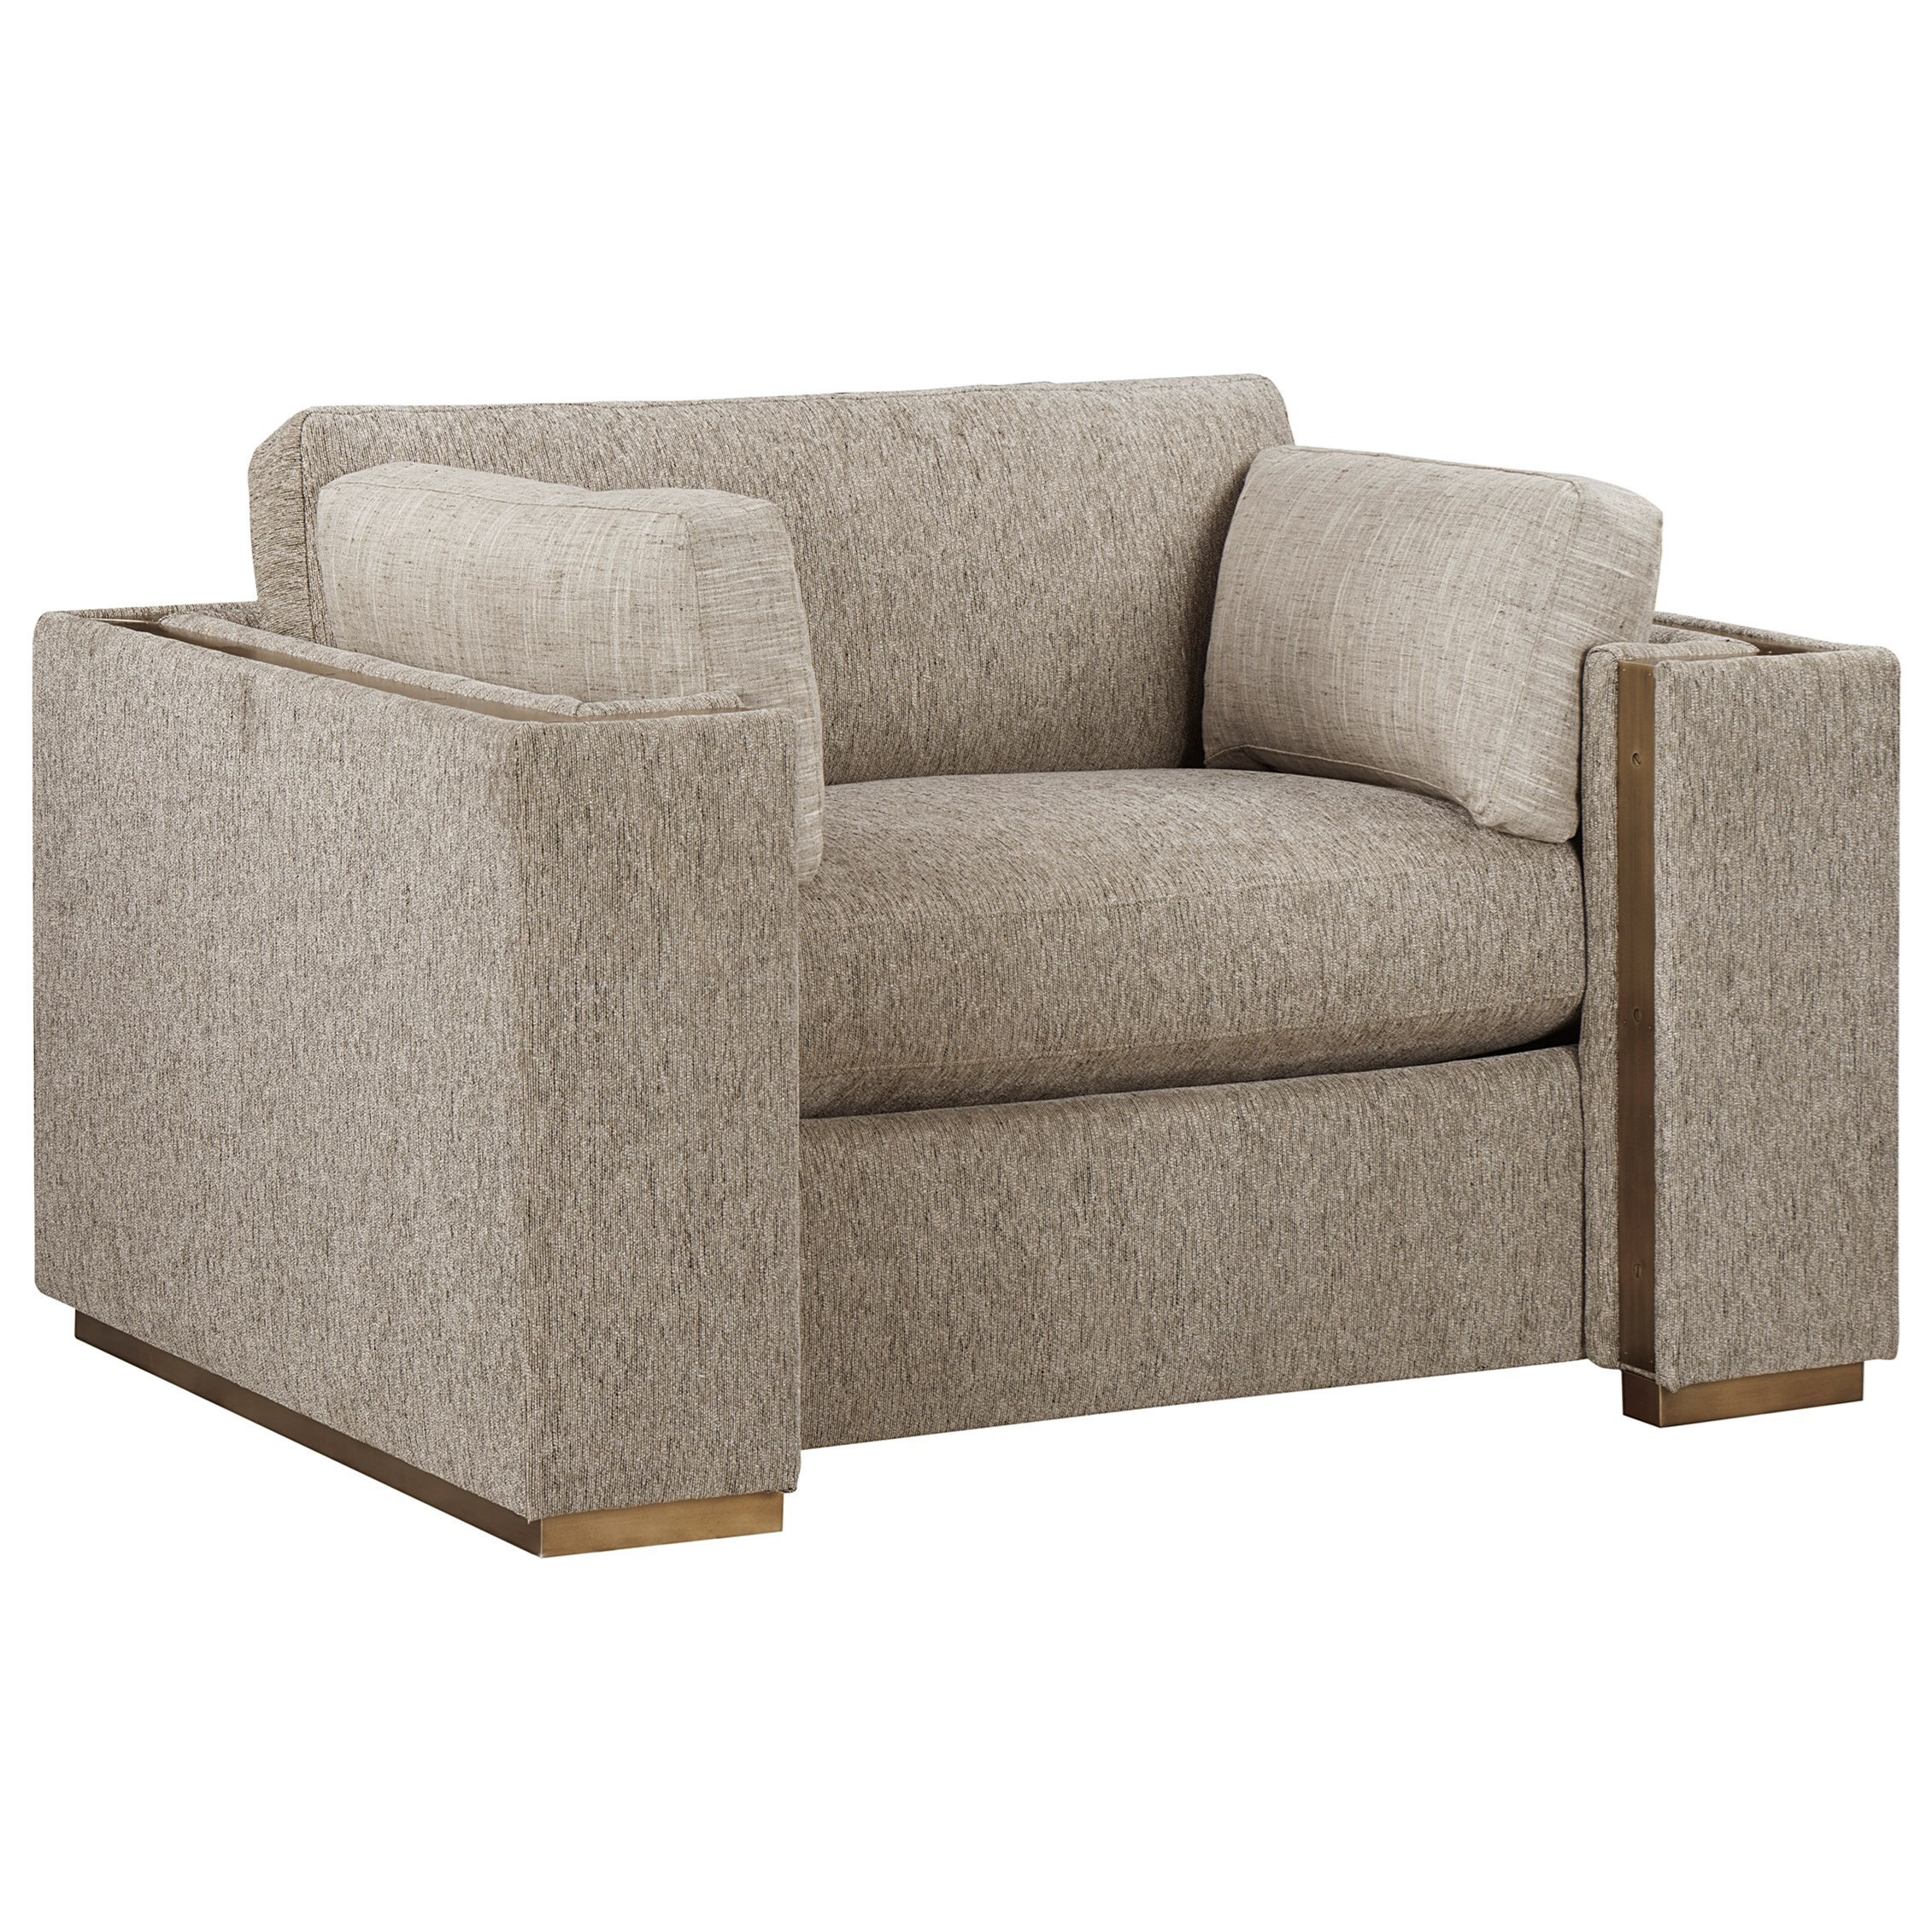 WoodWright Upholstery Chair and a Half by Klien Furniture at Sprintz Furniture